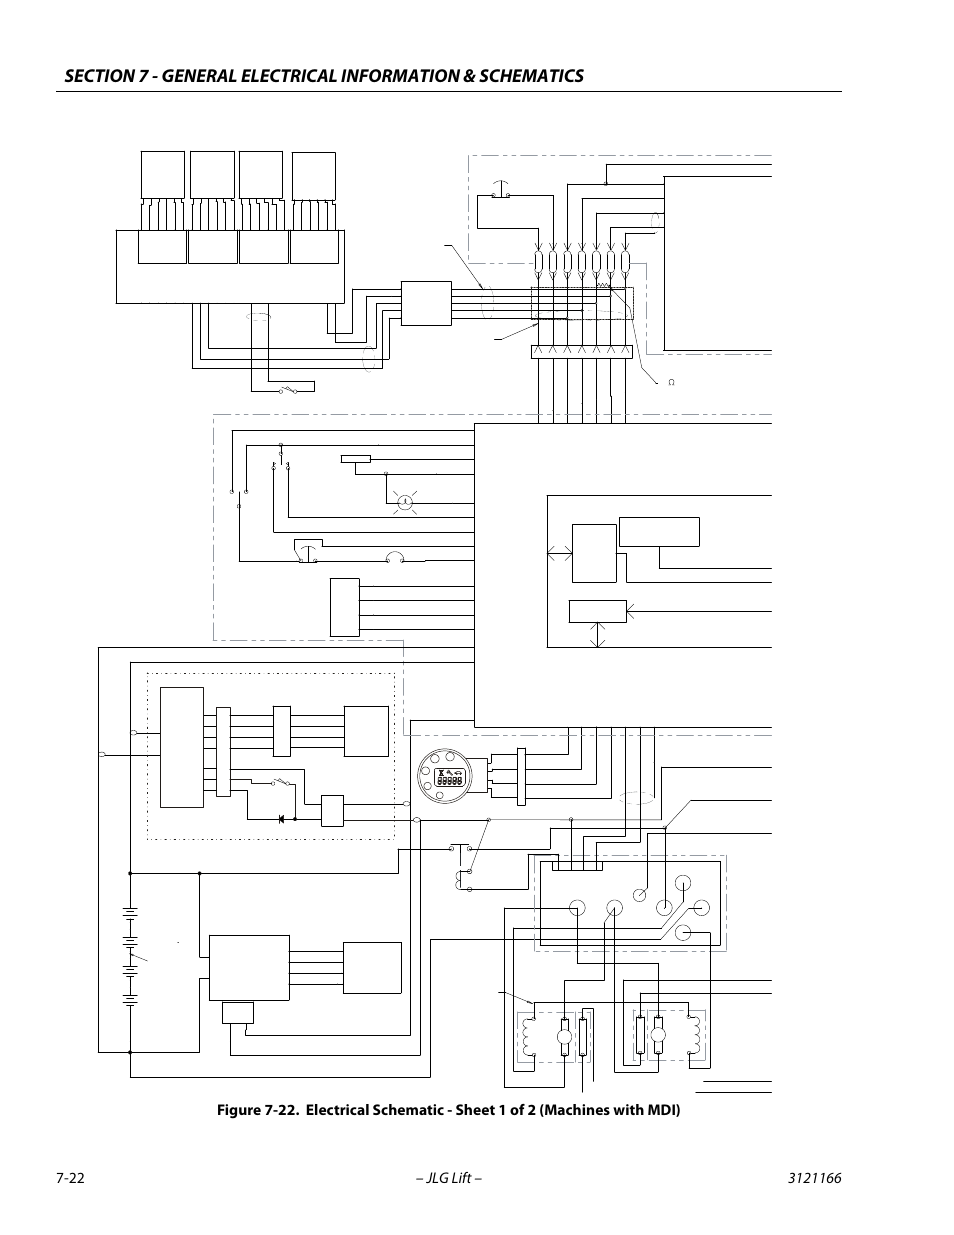 4716003 Jlg 3246 Wiring Diagram | Wiring Resources on jlg parts catalog, jlg parts diagram, 4 pin trailer diagram, jlg foot pedal wiring,